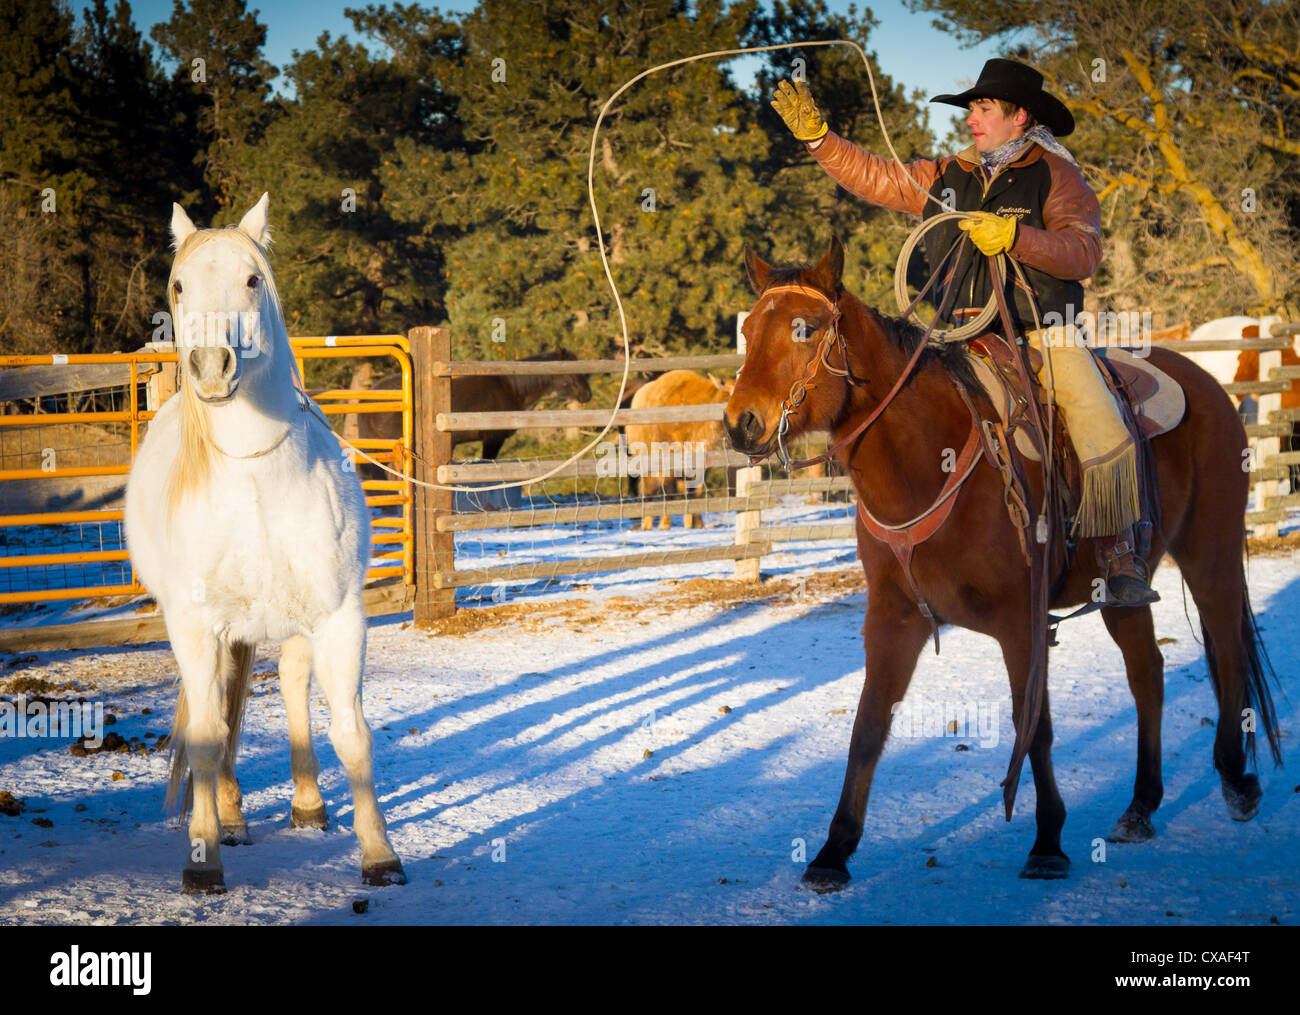 Cowboy in corral chasing a horse with his lasso on a ranch in northeastern Wyoming - Stock Image